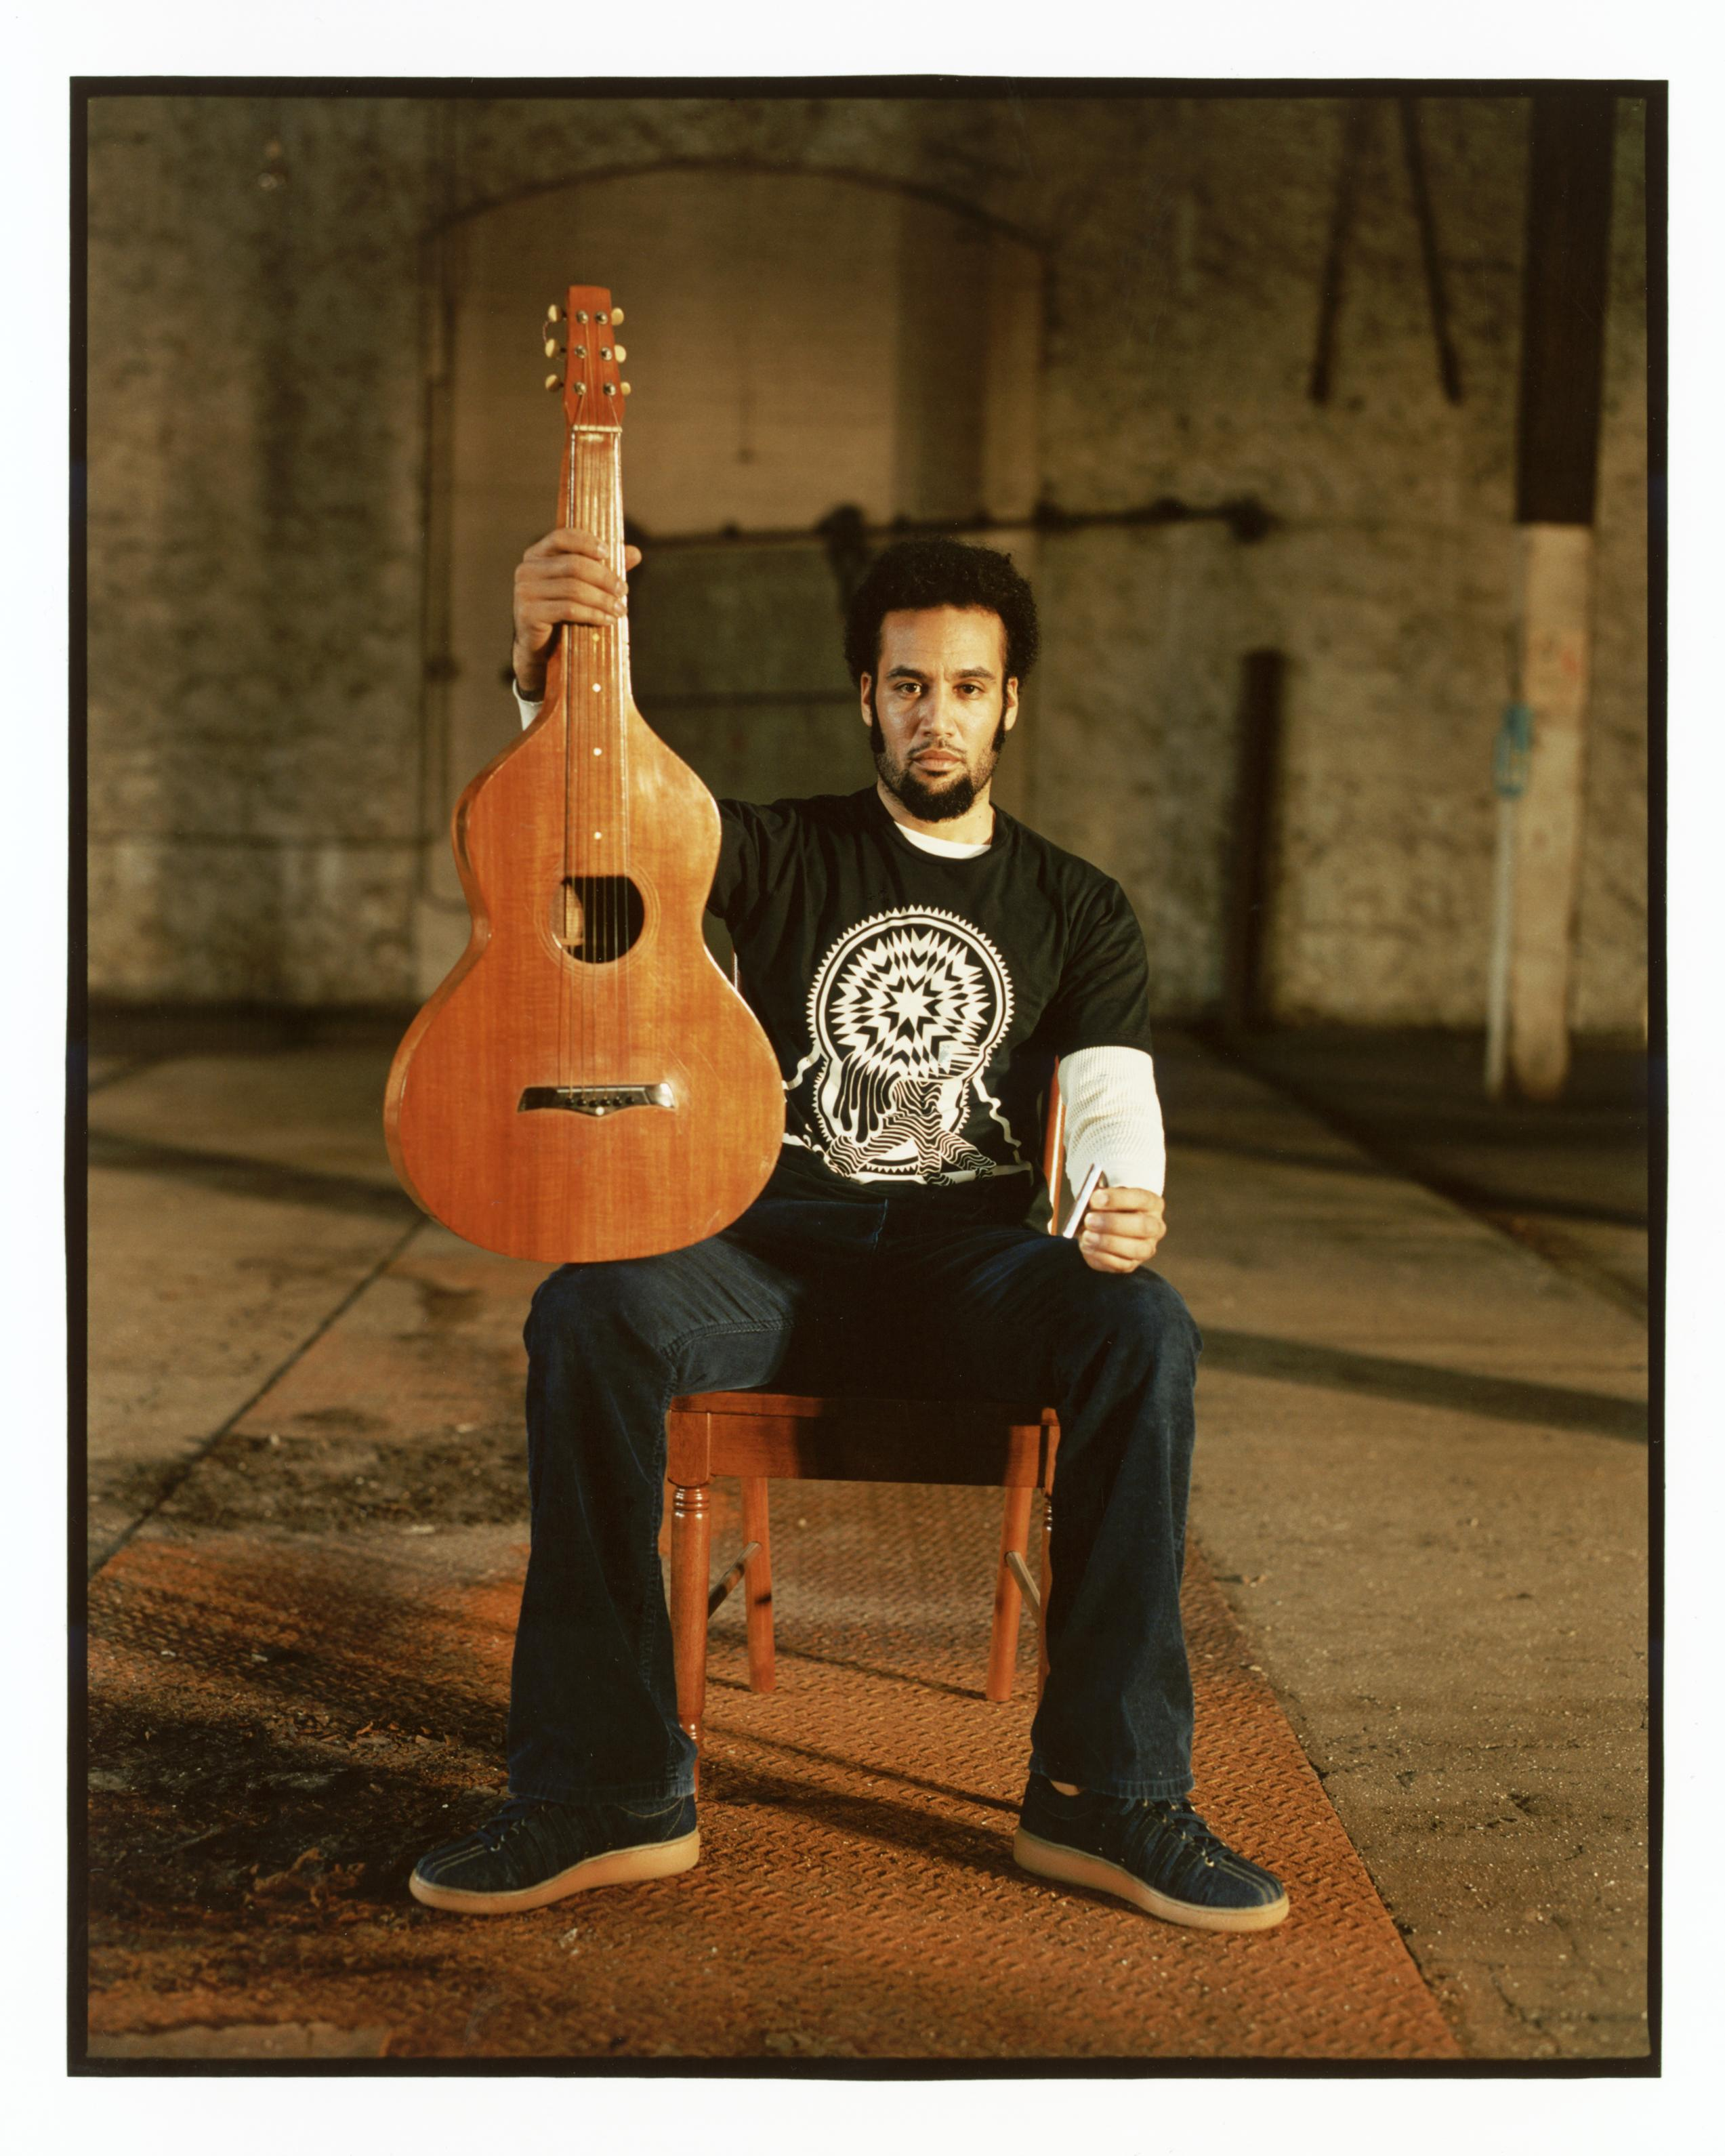 a review of ben harpers song Check out another lonely day by ben harper on amazon music start your 30-day free trial of unlimited to listen to this song plus tens of millions more songs average customer review: 50 out of 5 stars 2 customer reviews.